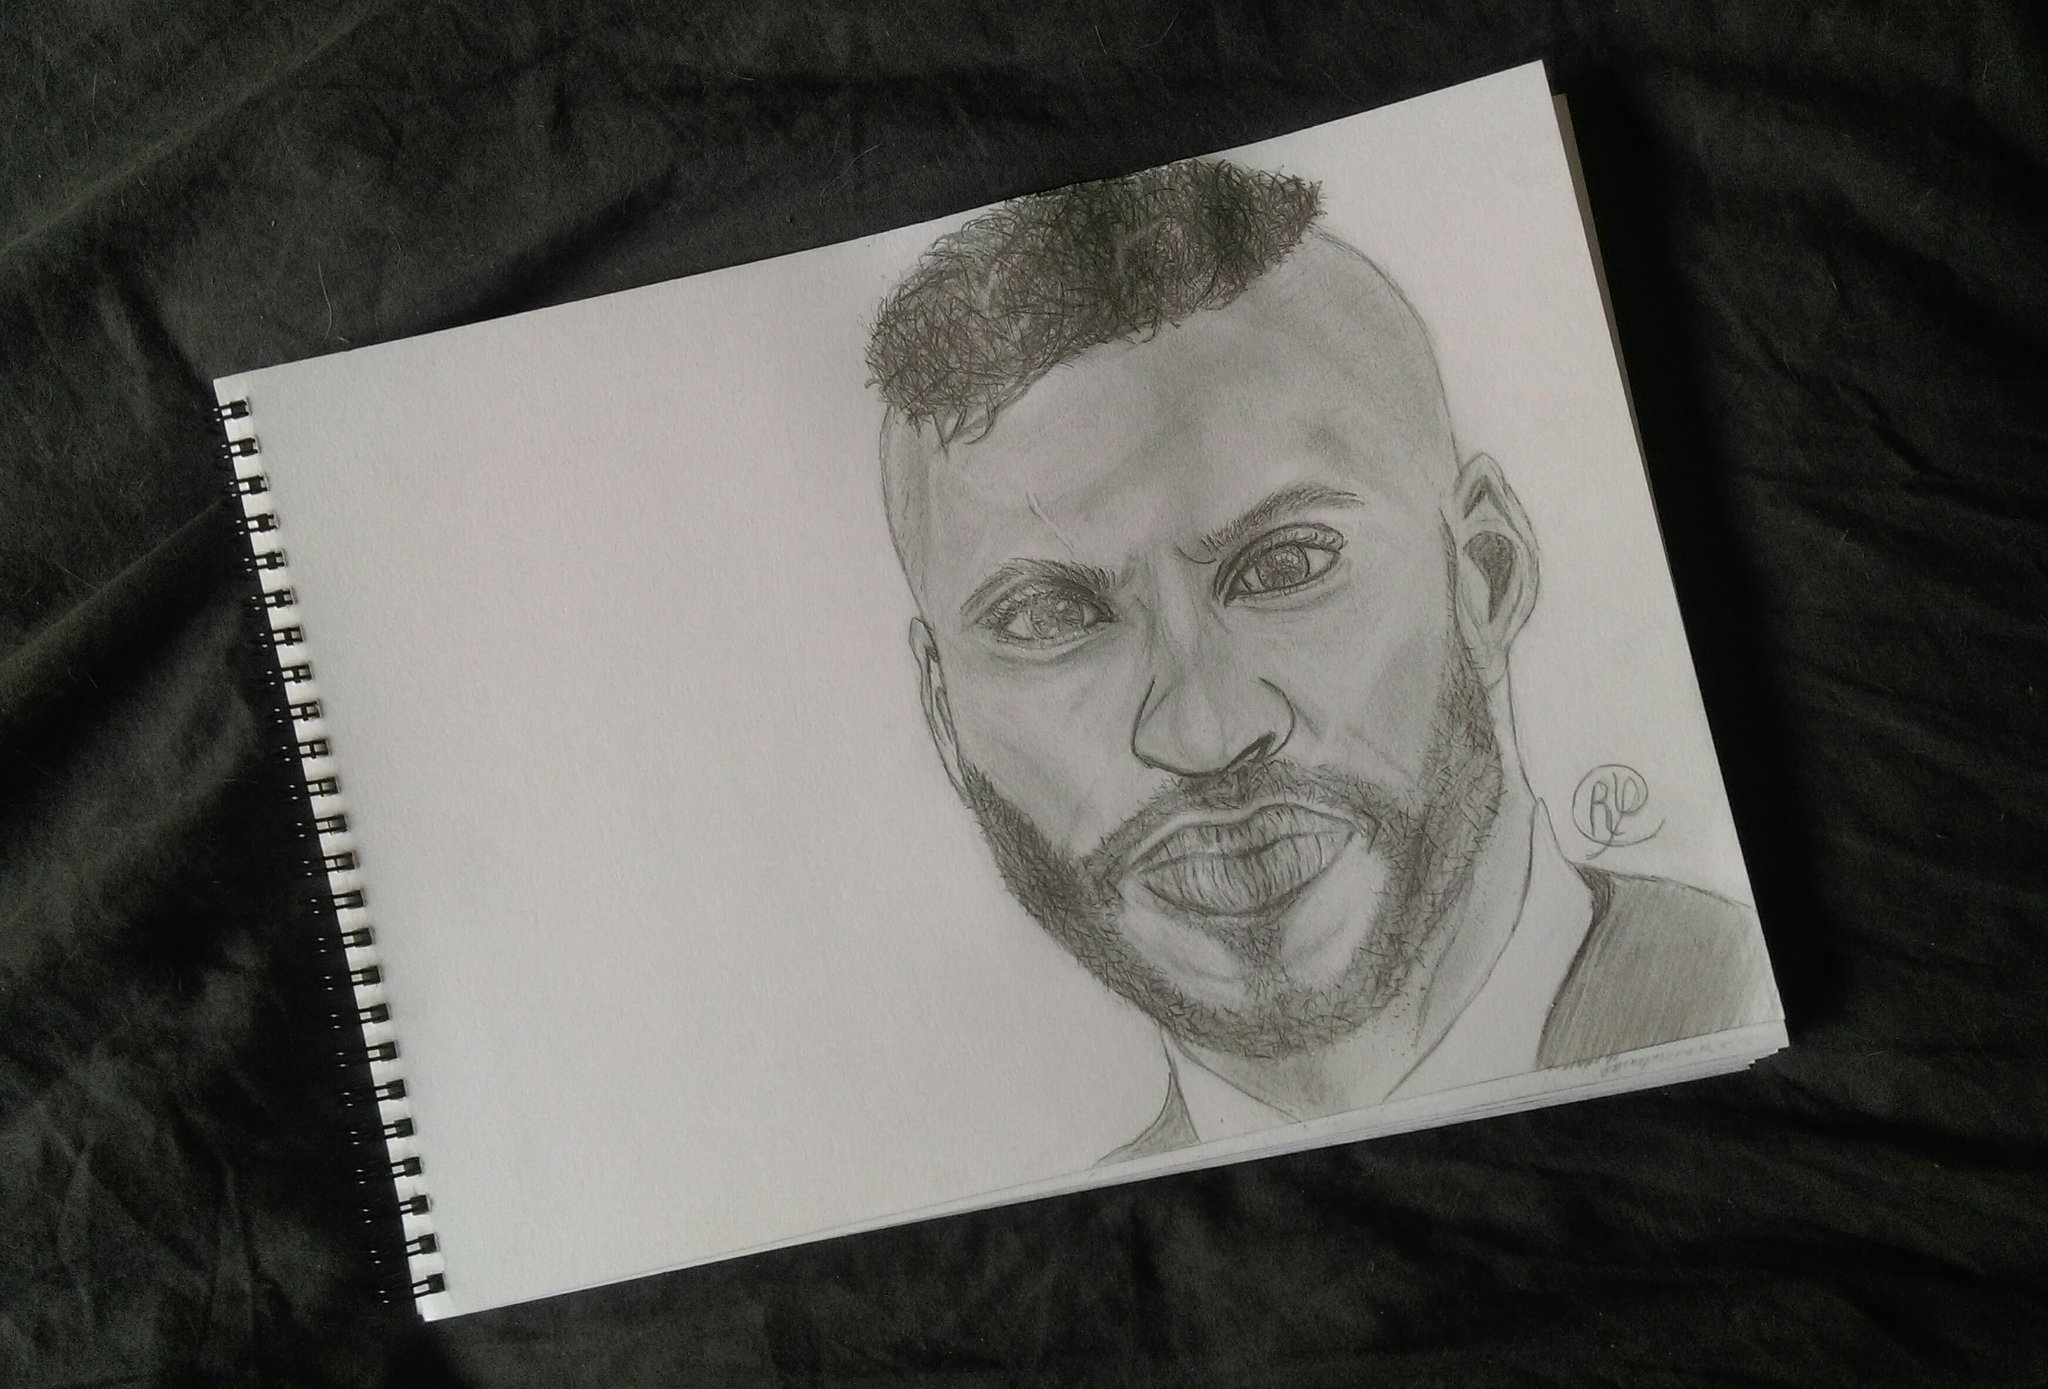 RT @Cloe_ry: @MrRickyWhittle It's always a pleasure to draw you sweetie! Je t'aime❤󾓧 https://t.co/72lPIC6Wge